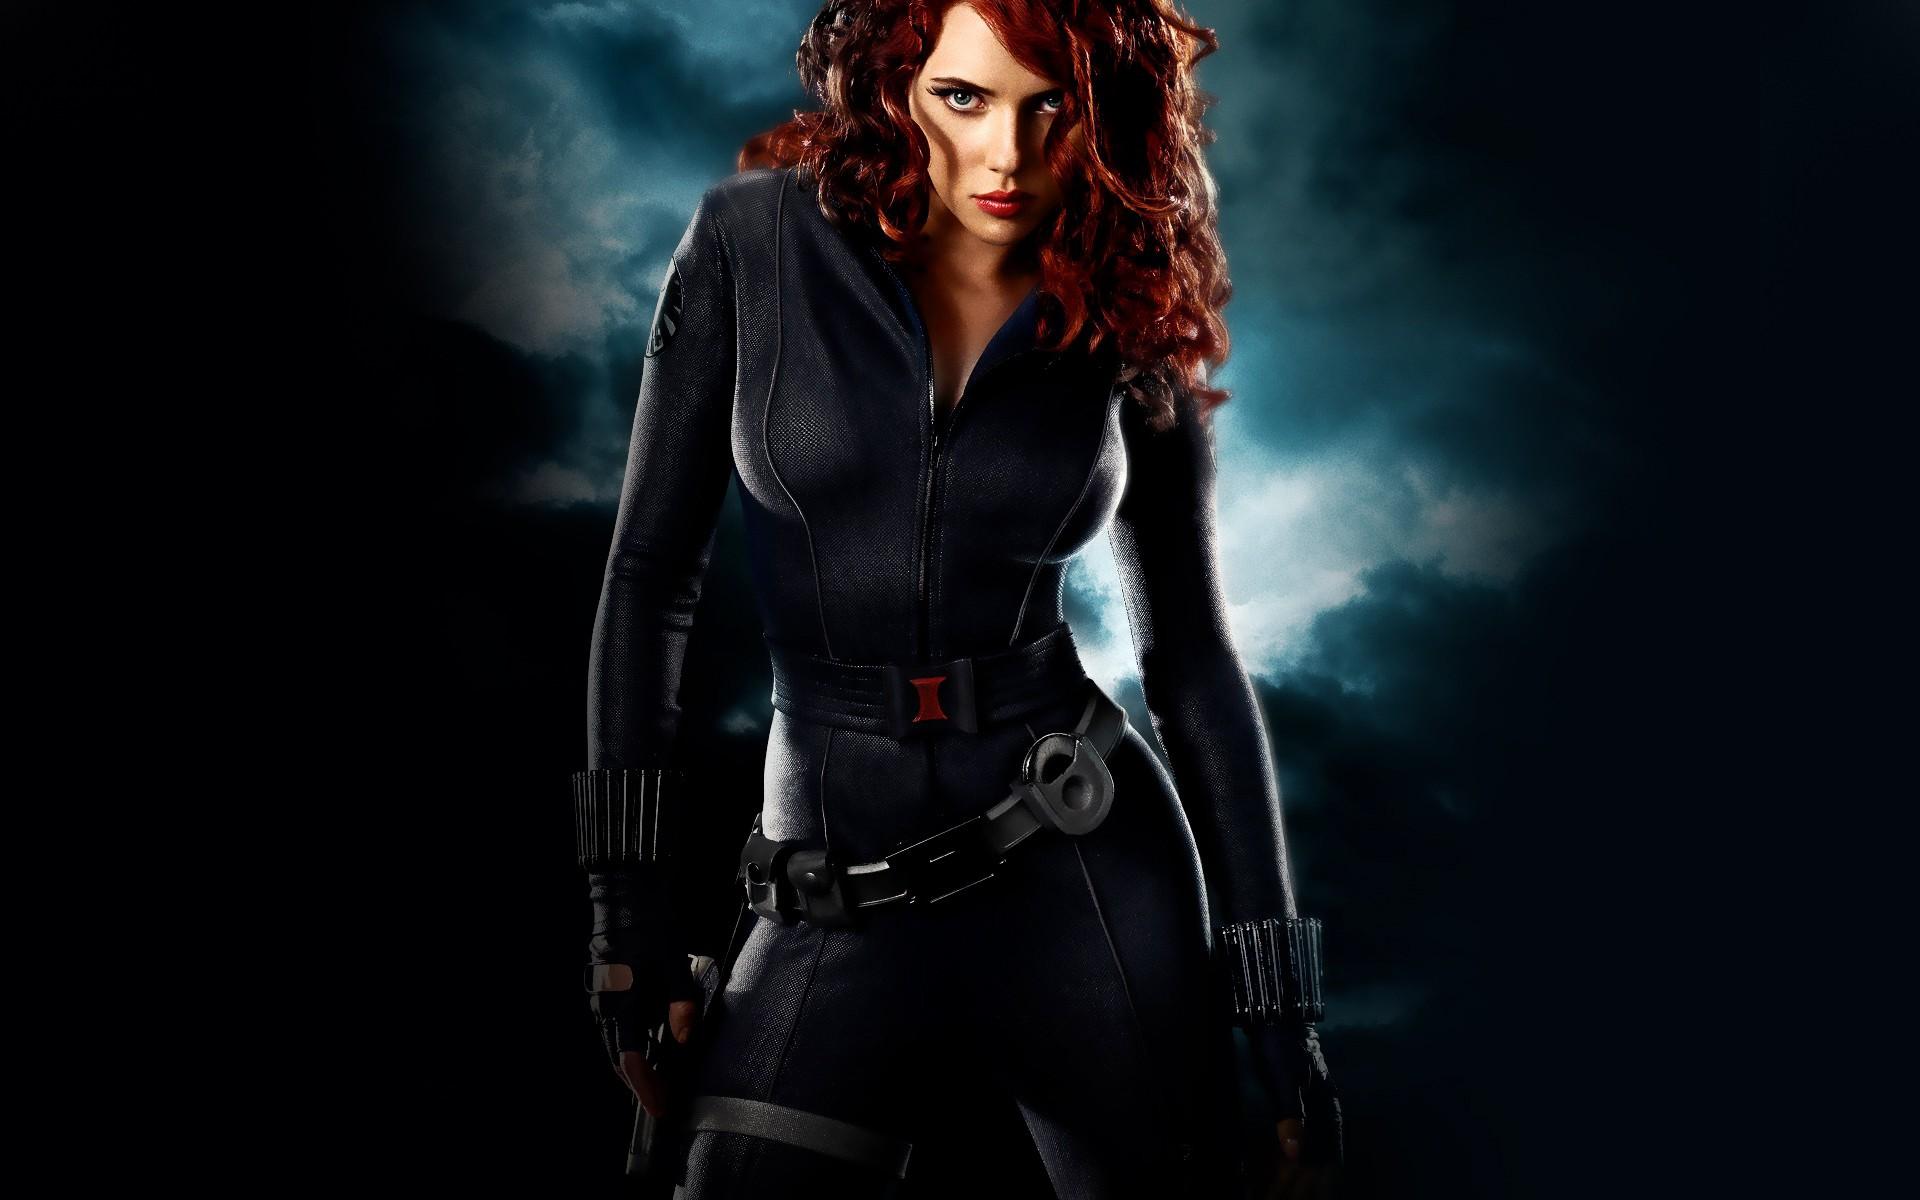 Fantastic Black Widow Wallpaper